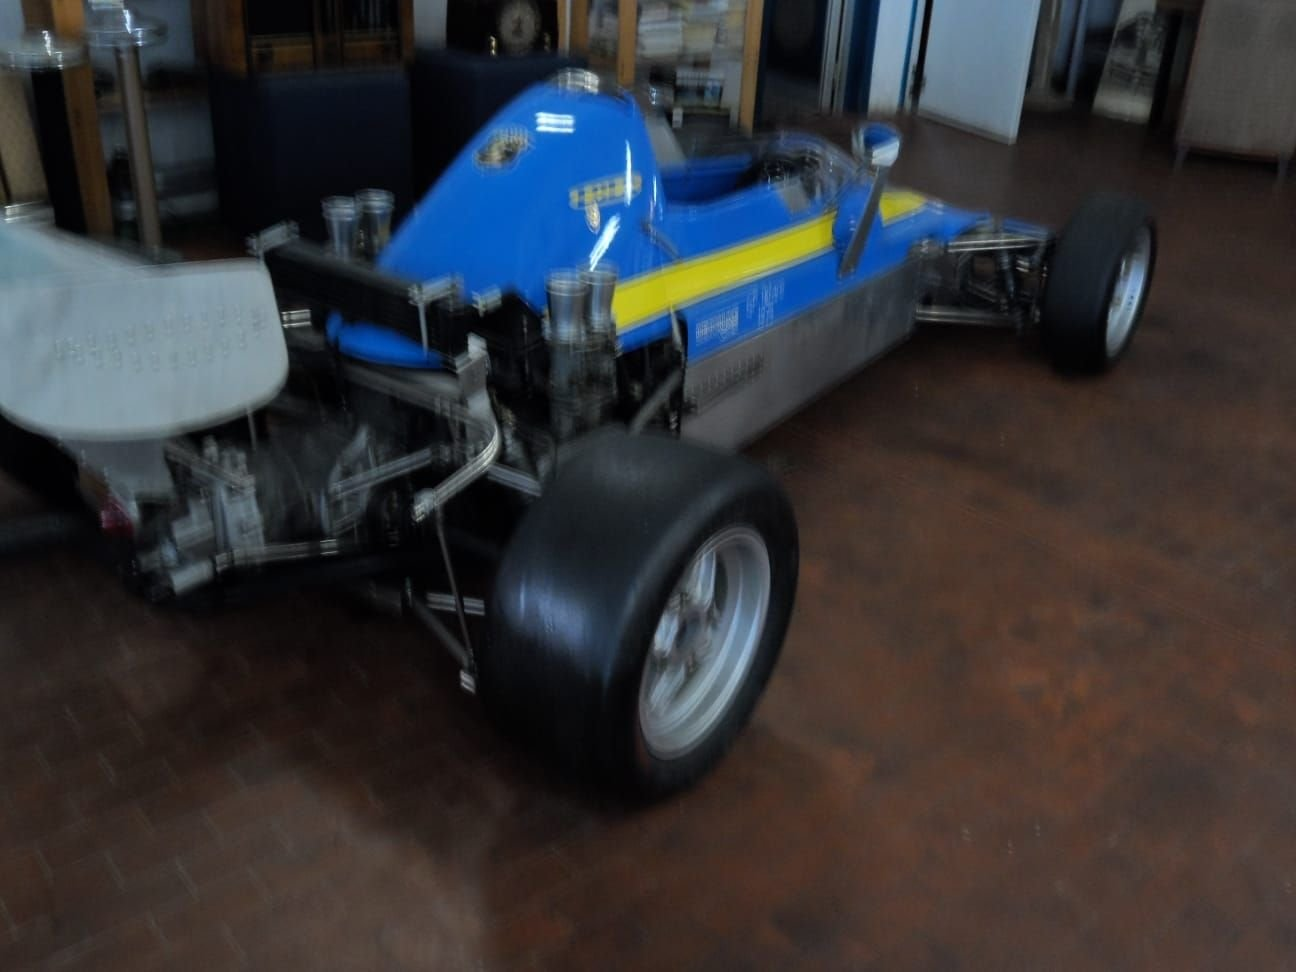 1974 LOLA CHASSIS FORMULA 3 +  Hewland  Gearbox. For Sale (picture 5 of 10)